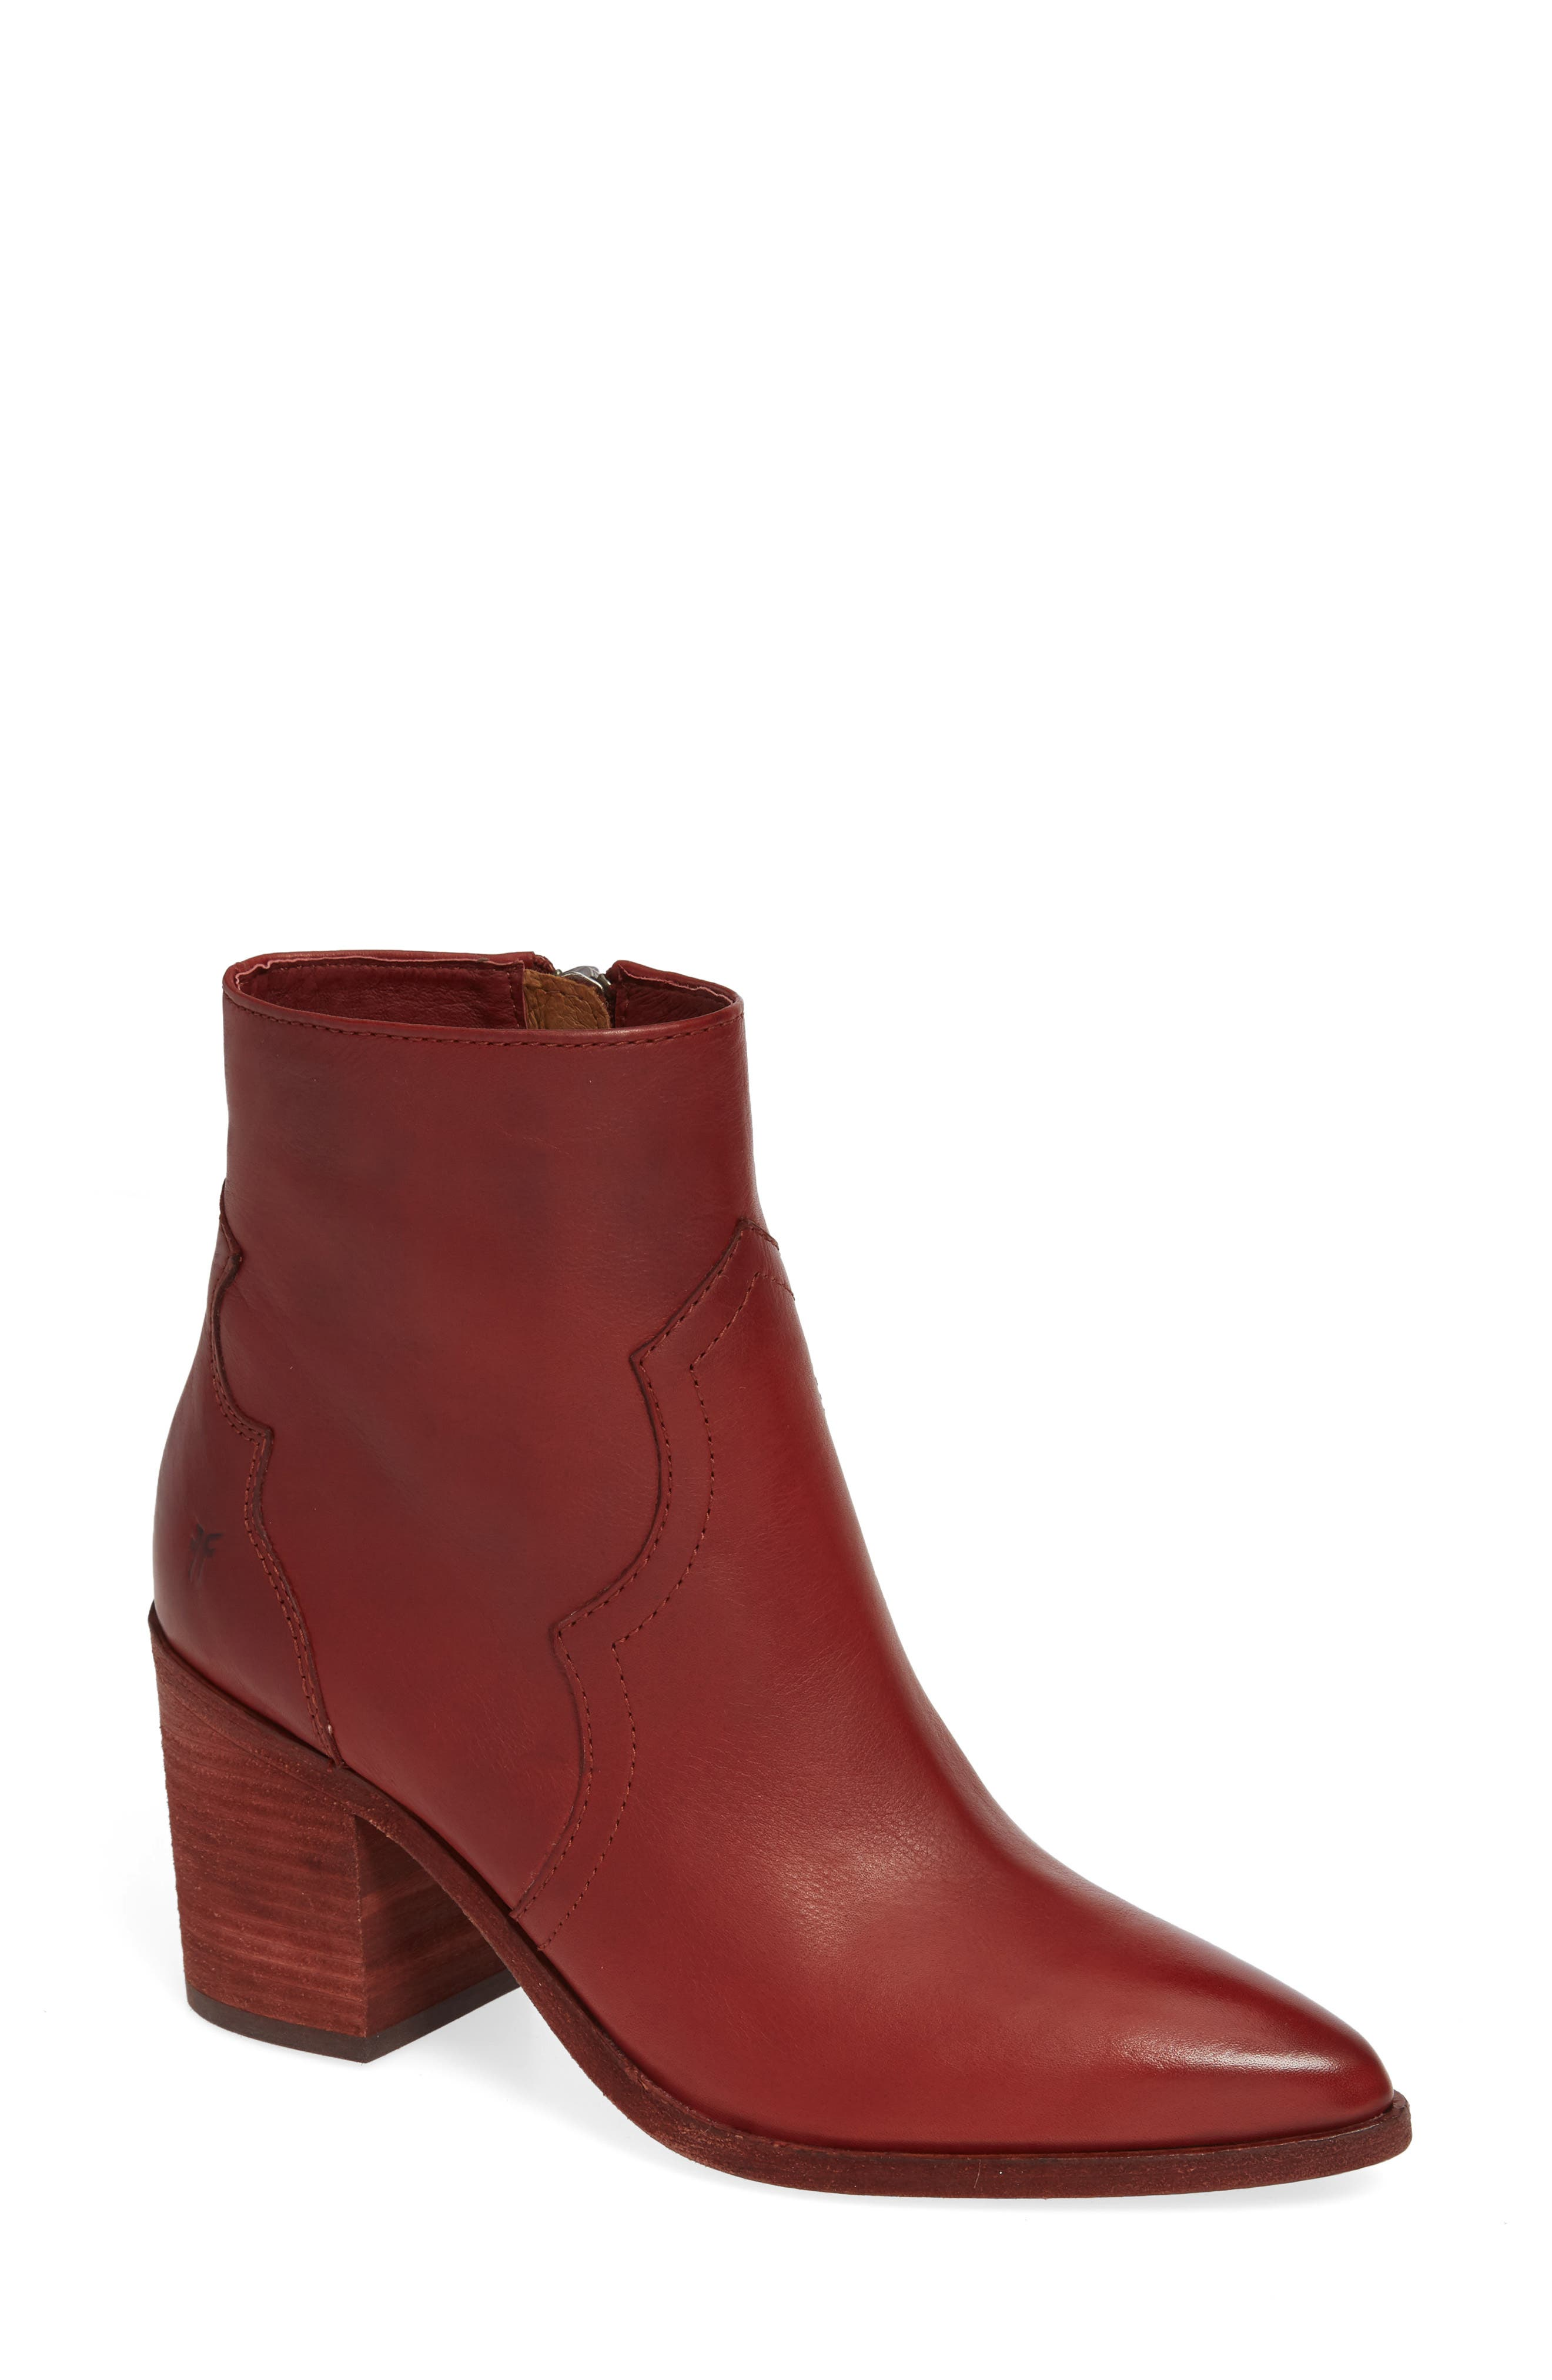 Flynn Bootie,                             Main thumbnail 1, color,                             RED CLAY LEATHER